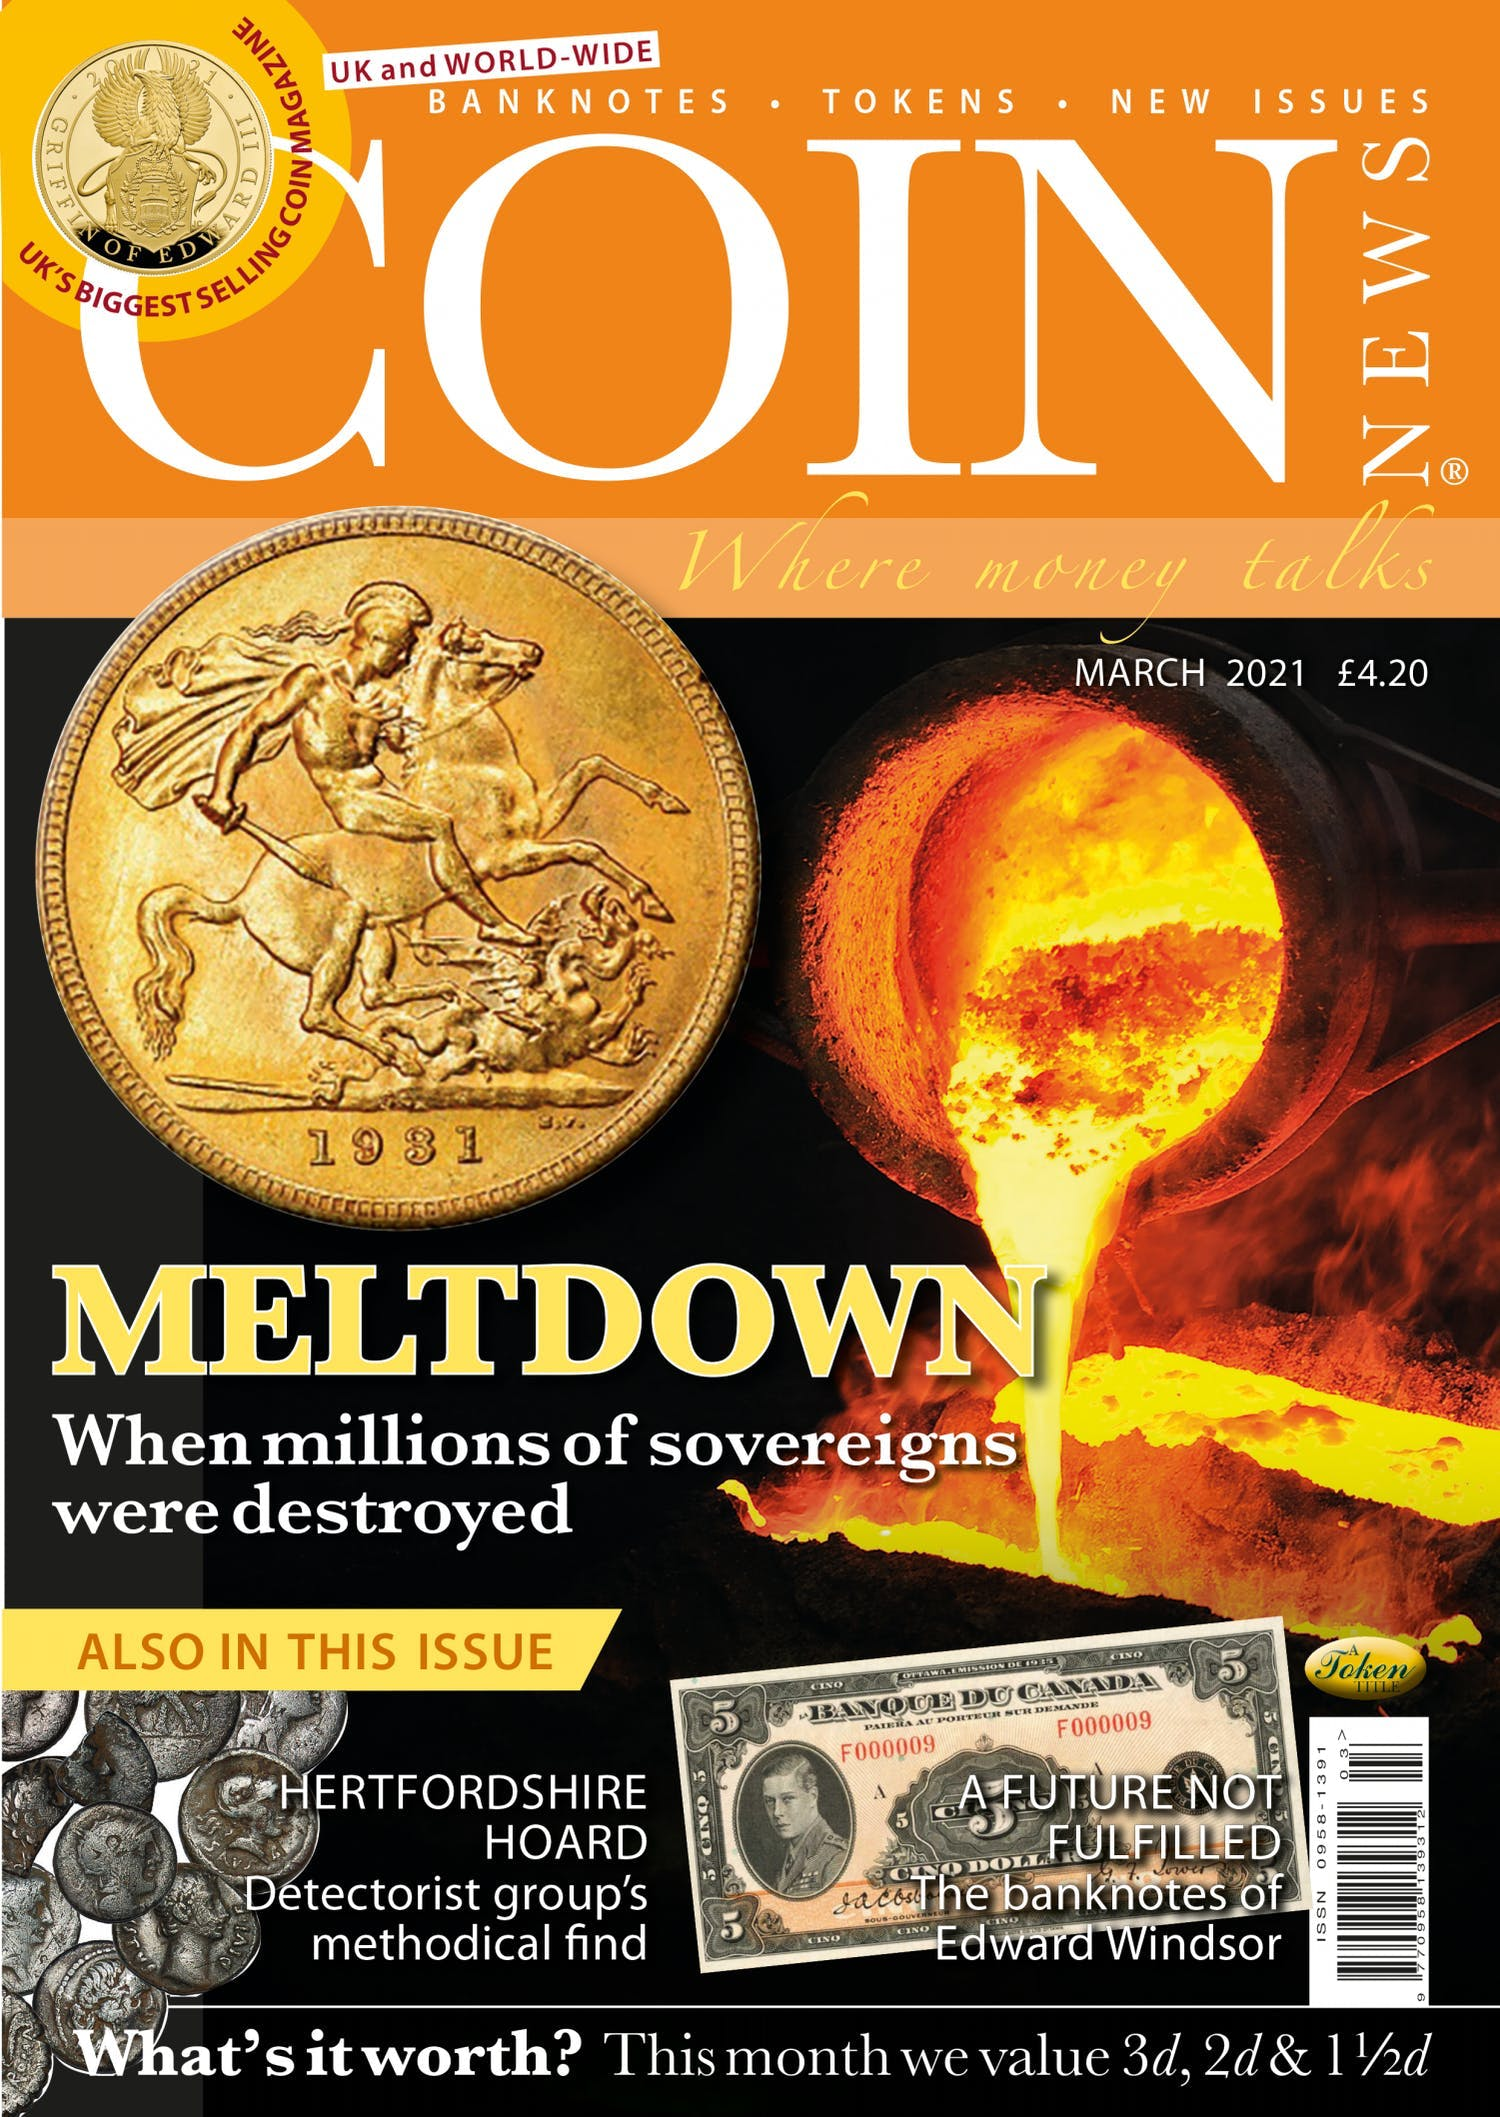 The front cover of Coin News, March 2021 - Volume 58, Number 3